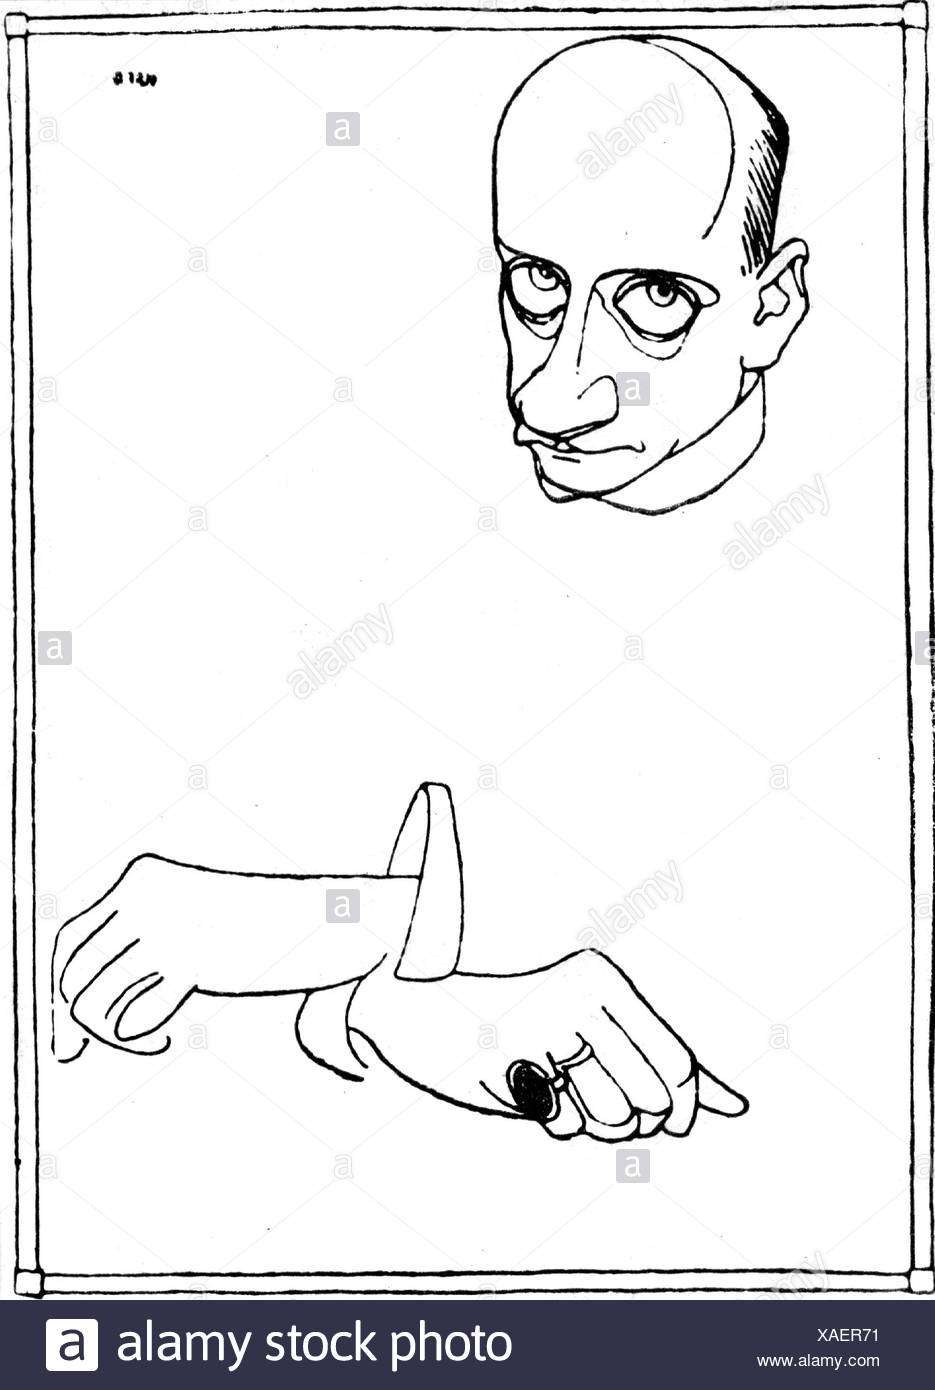 Meyrink, Gustav, 19.1.1868 - 4.12.1932, Austrian author / writer, caricature by Olaf Gulbransson, Additional-Rights-Clearances-NA - Stock Image